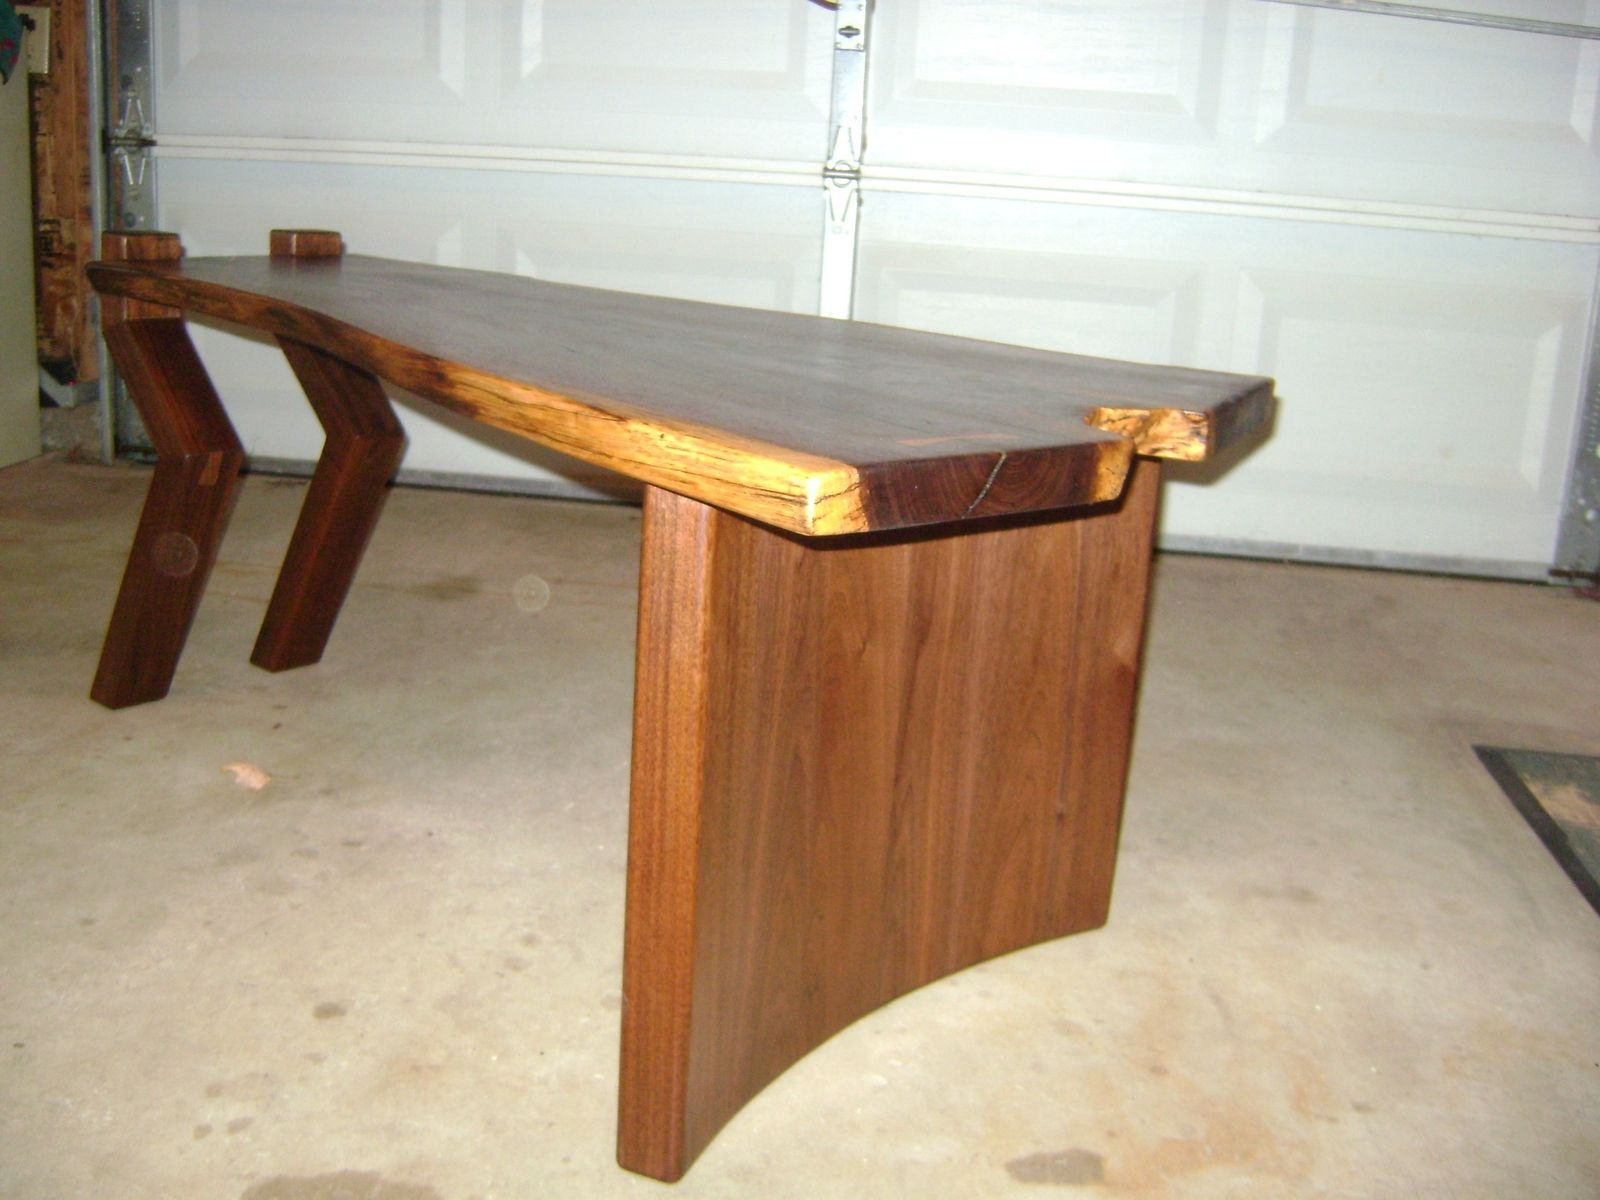 Hand Crafted Nakashima Inspired Coffee Table by Z & Z Custom